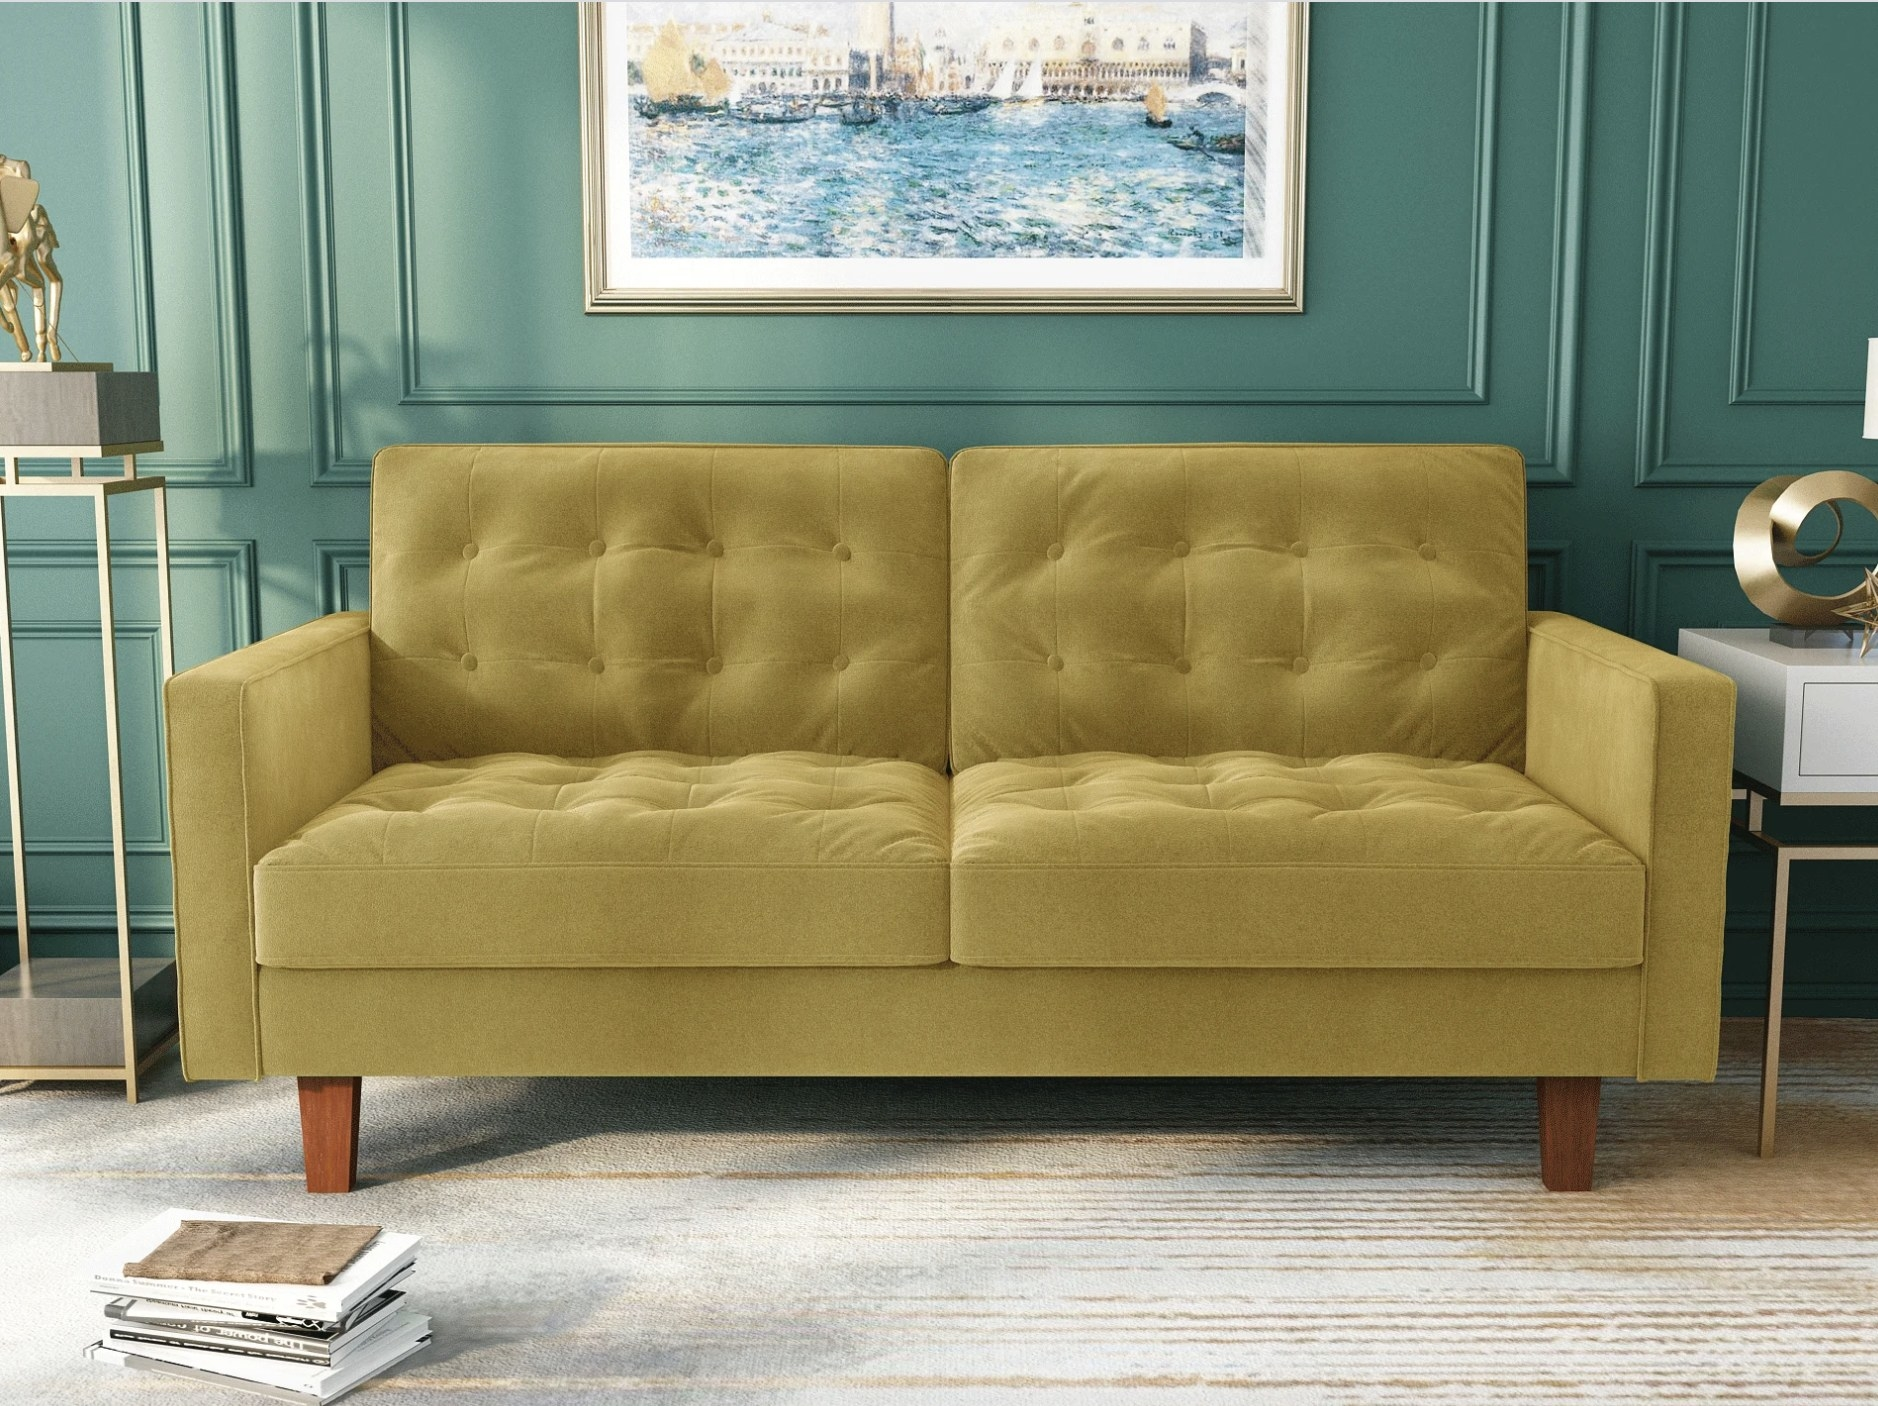 the sofa in gold